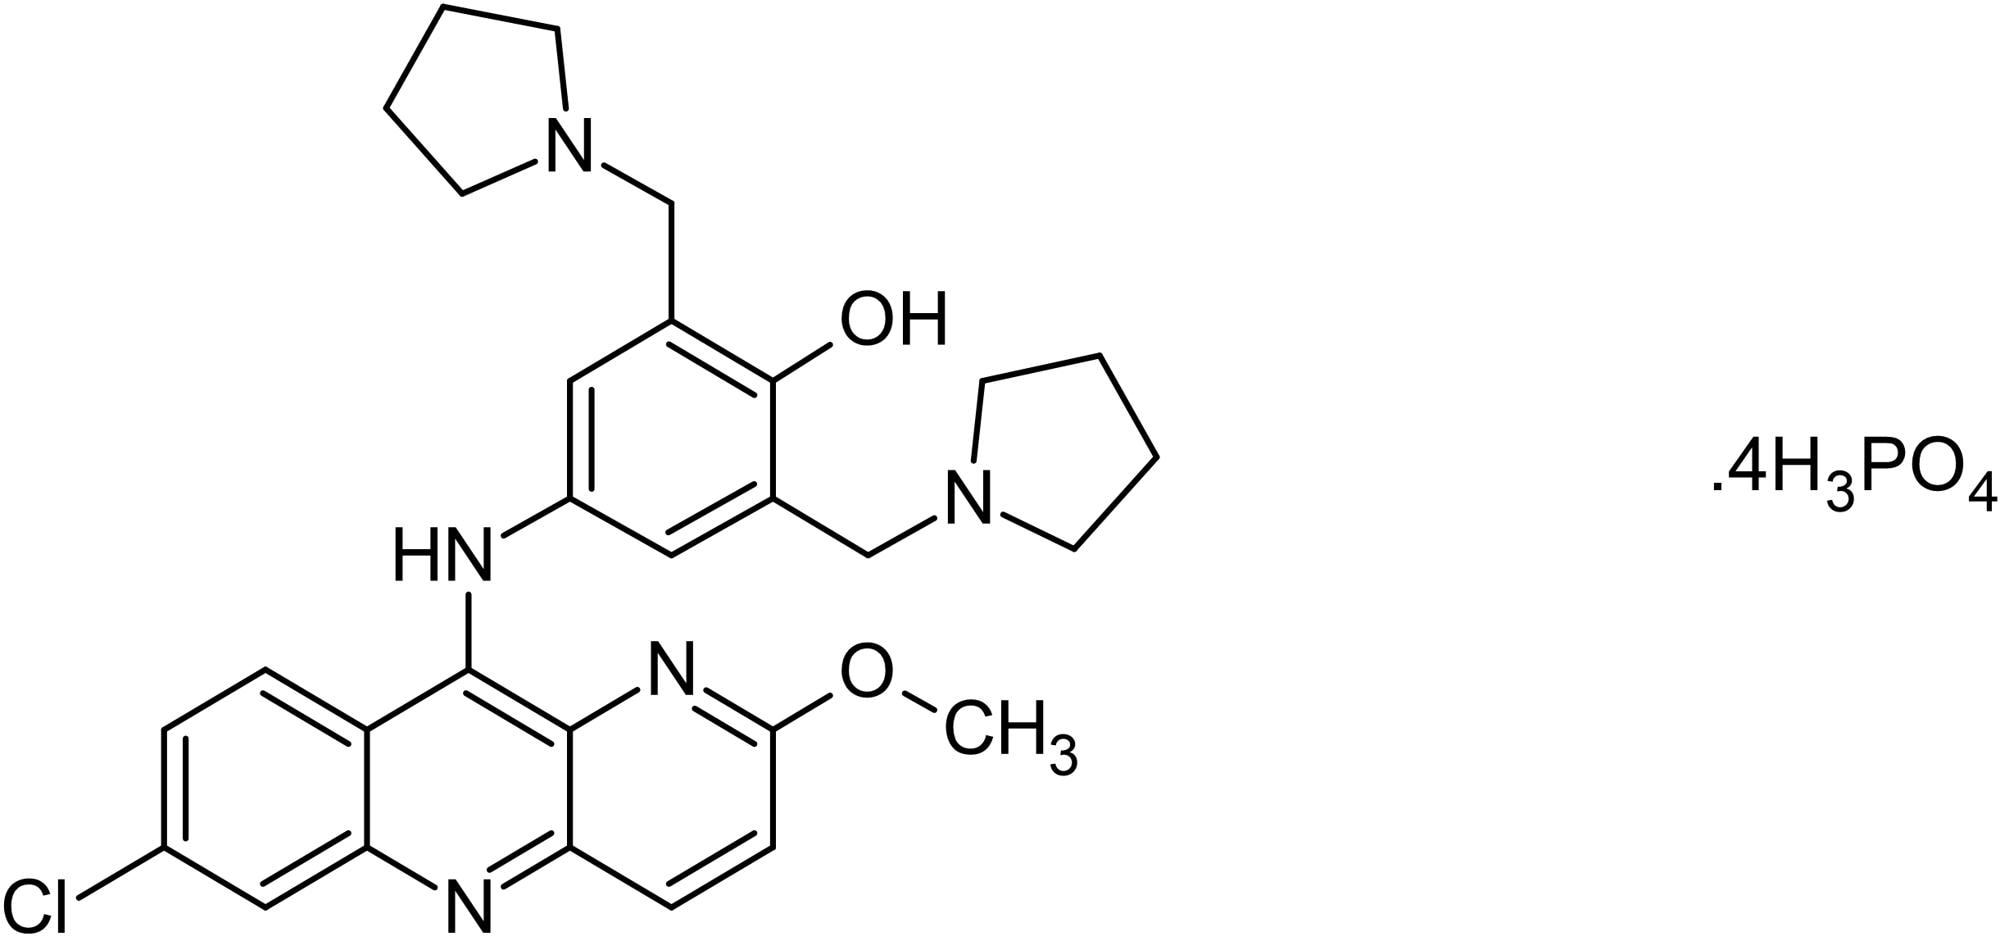 Chemical Structure - Pyronaridine tetraphosphate, Antimalarial agent (ab142696)